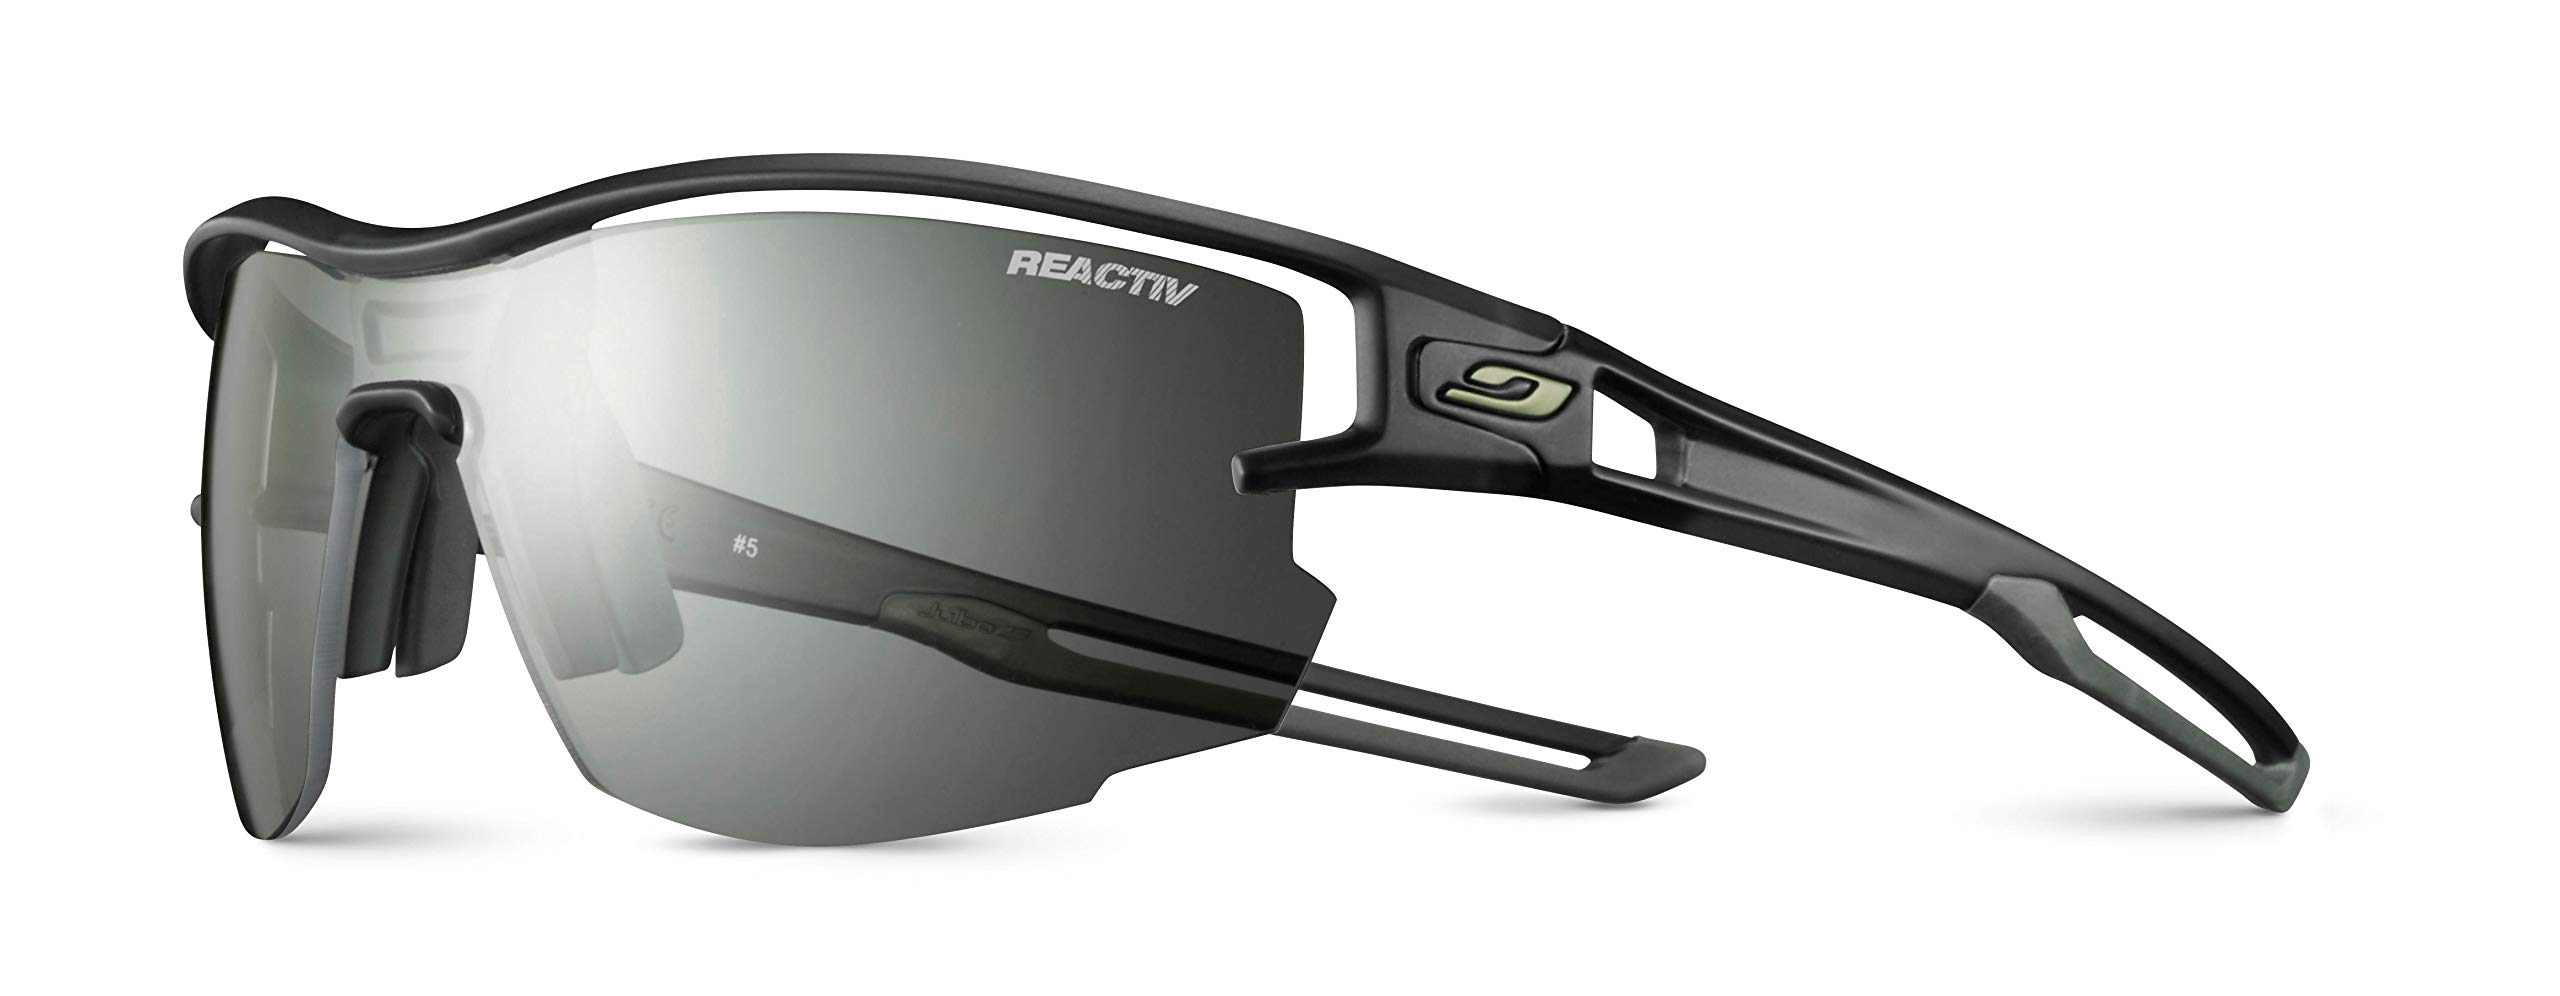 Julbo Aero Performance Sunglasses - Reactiv Performance 0/3 - Translucent Black/Army